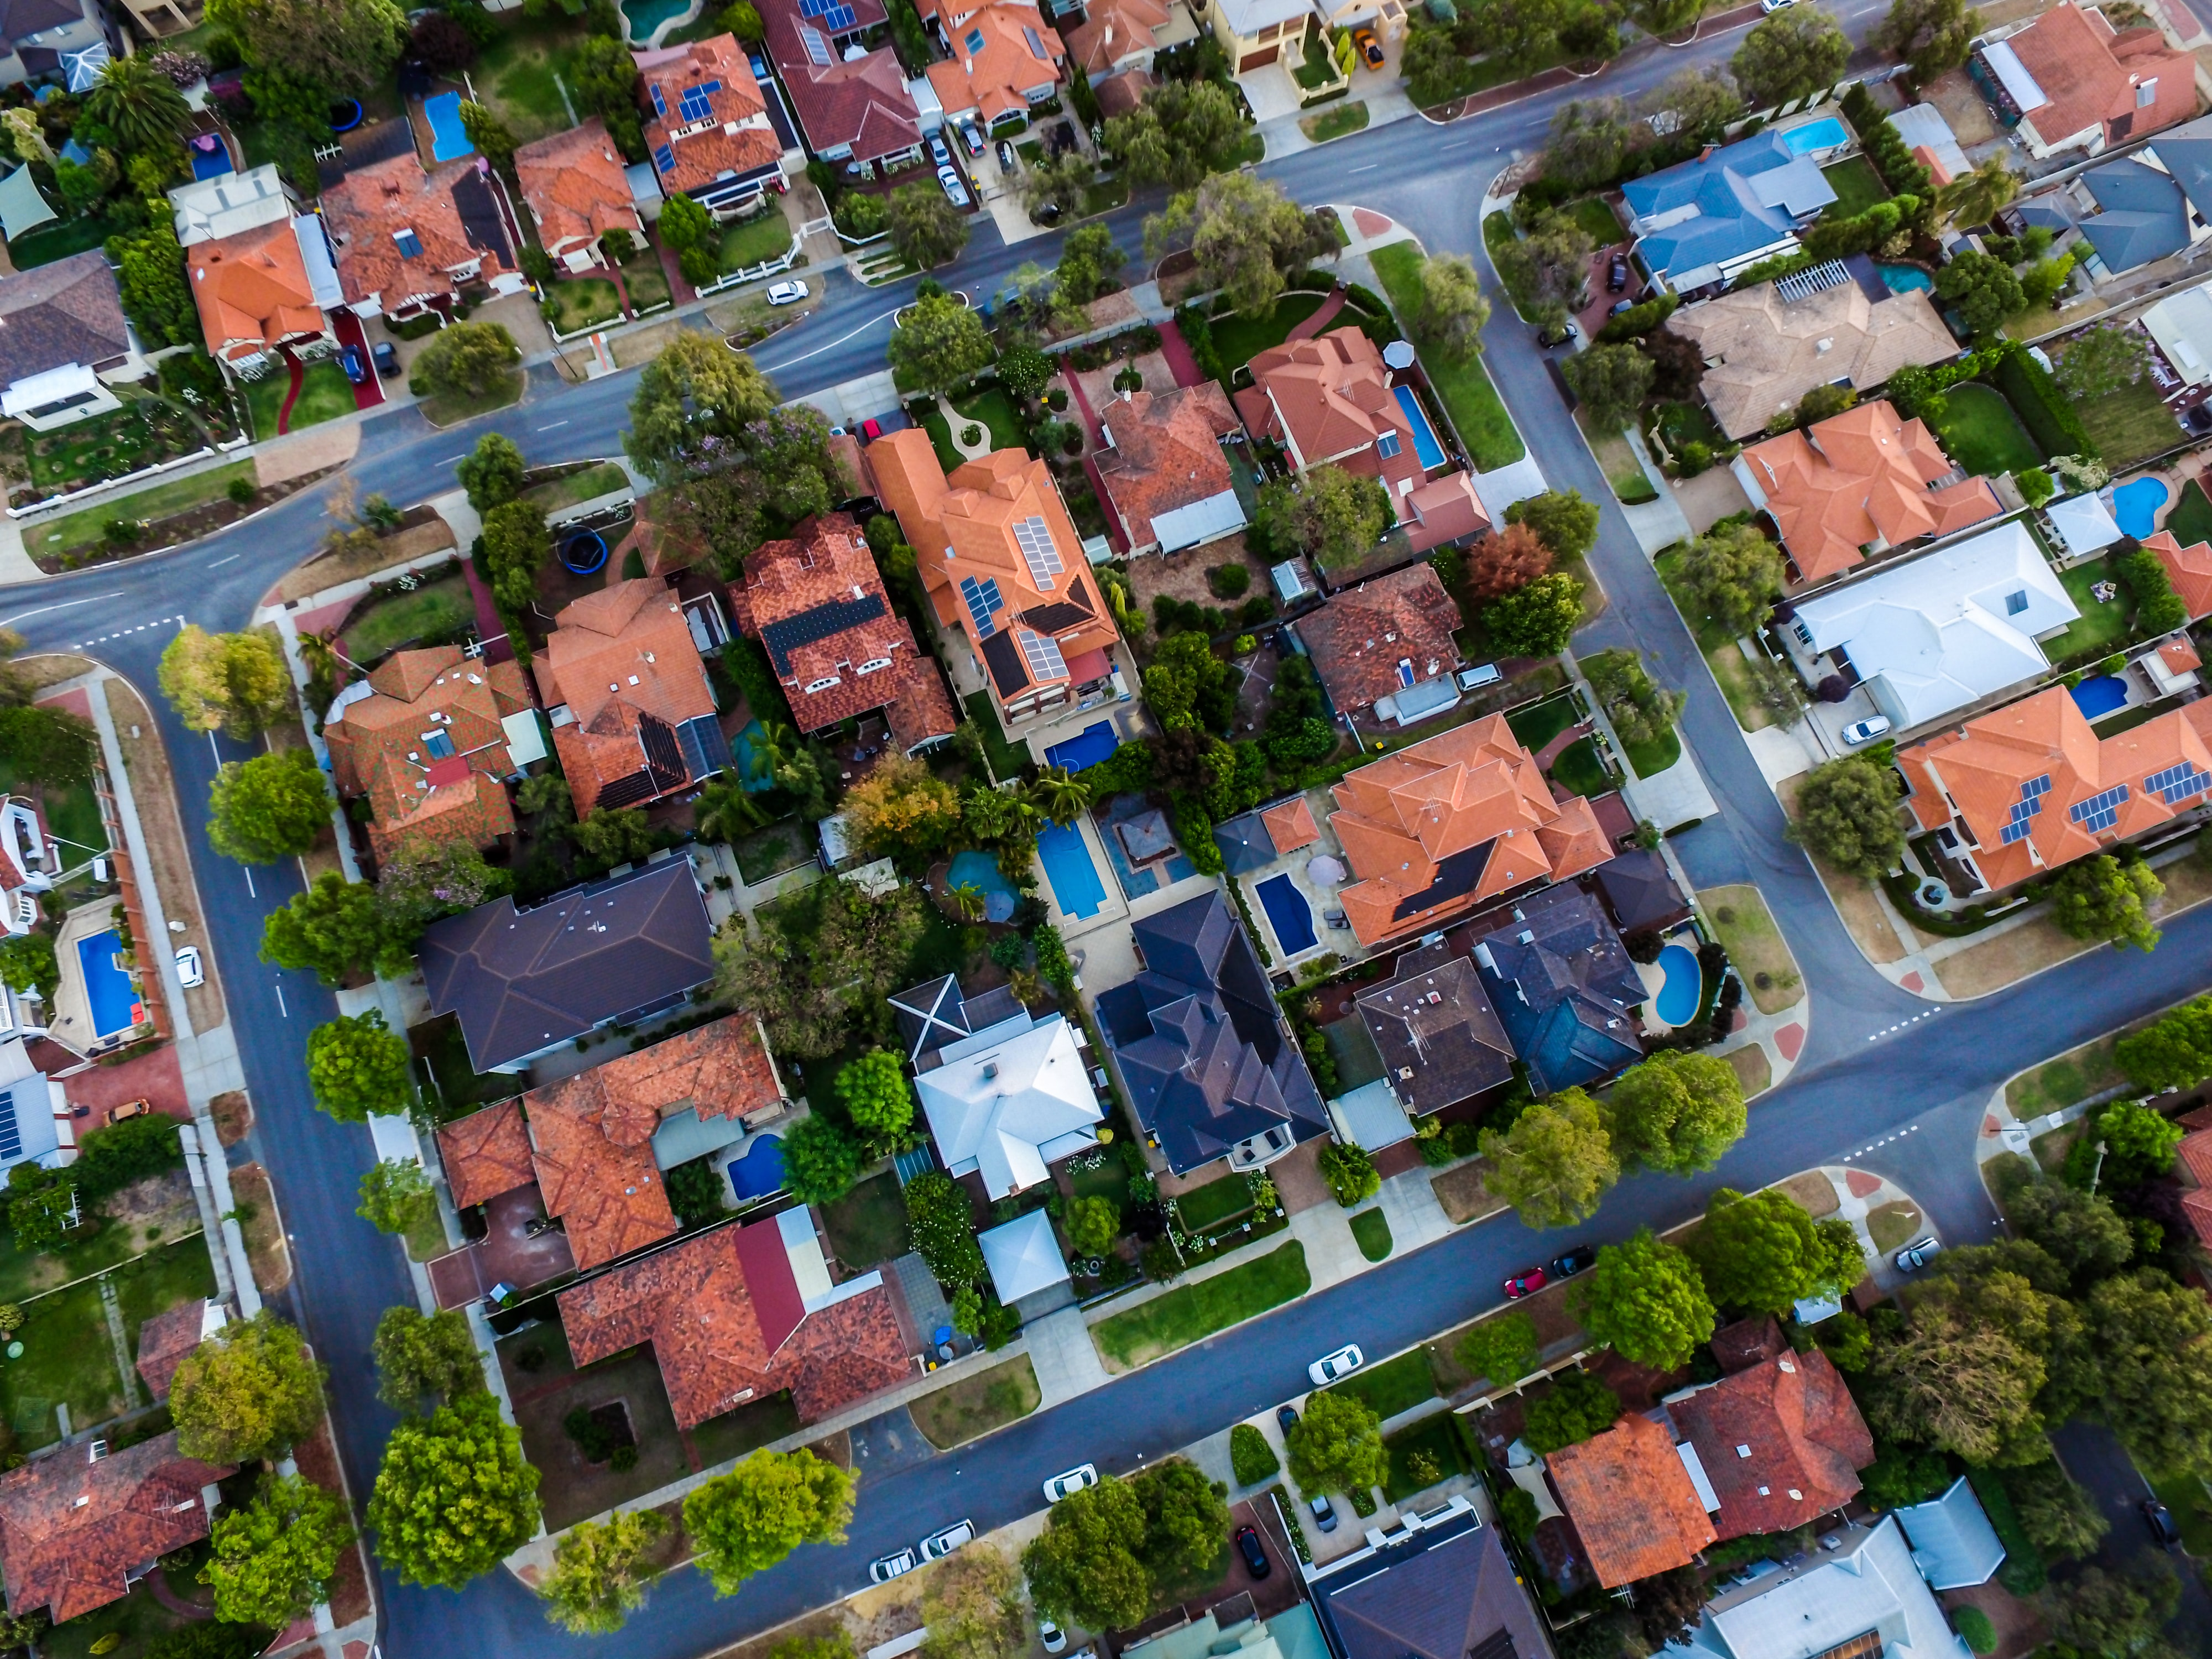 How will Coronavirus Impact Property Prices? - April Market Update